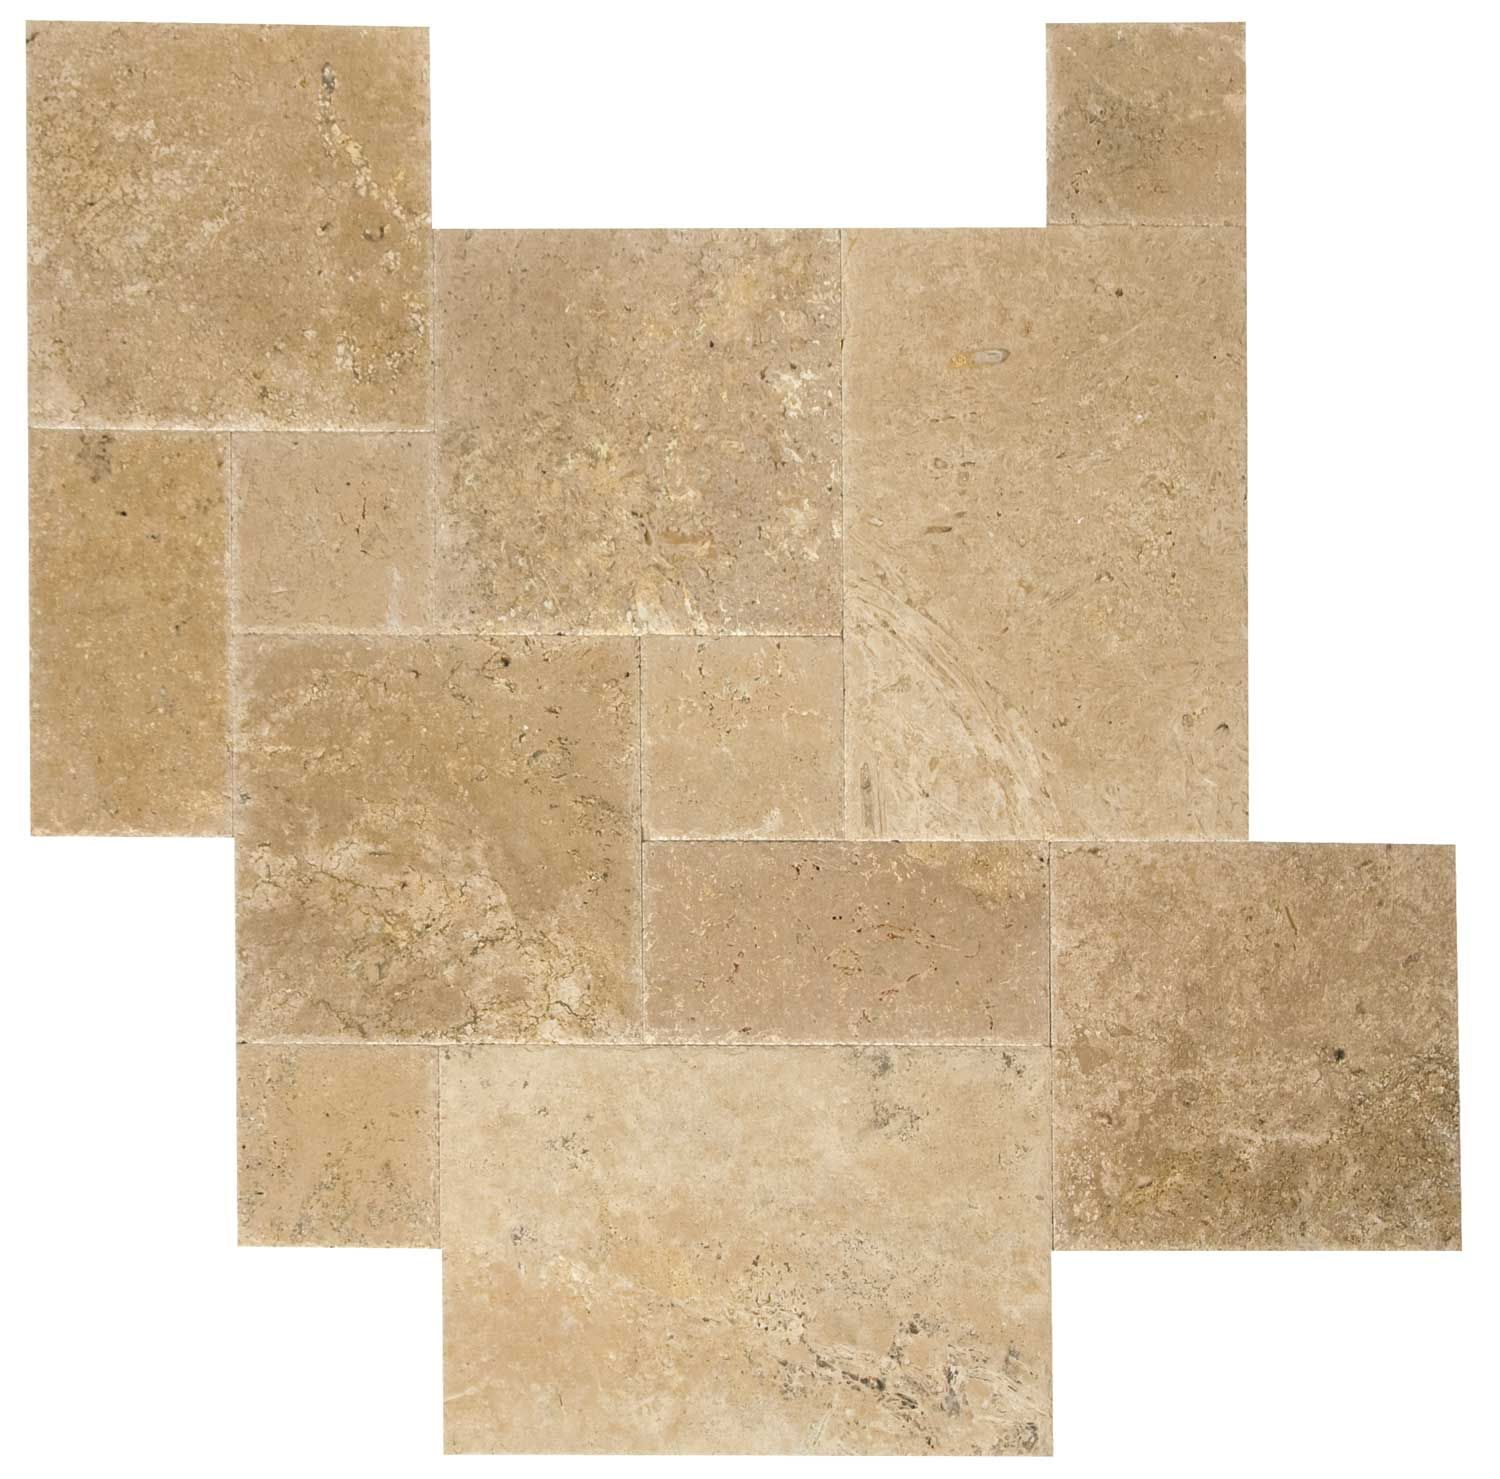 Tile for kitchen floor love the look of french pattern tile for kitchen floor love the look of french pattern travertine ushed dailygadgetfo Images